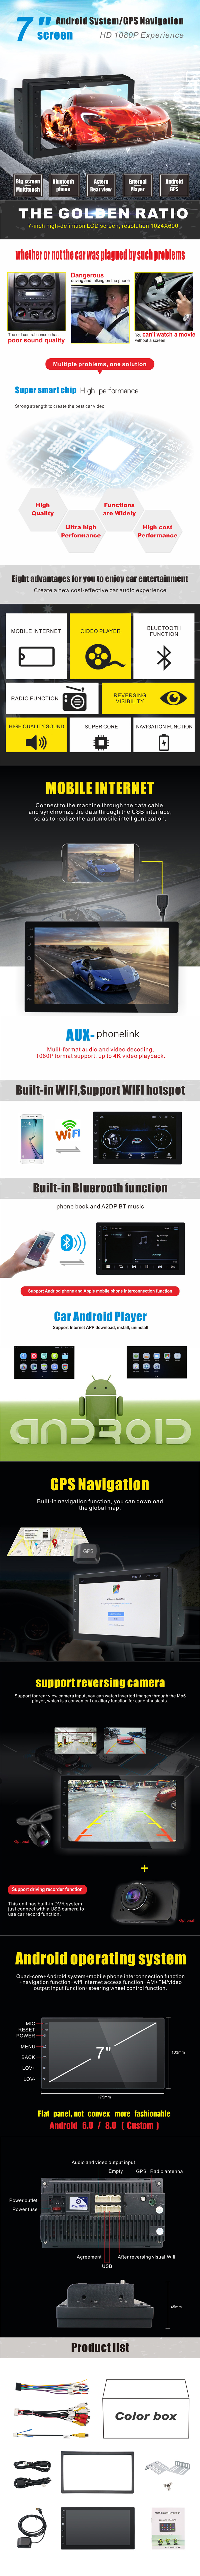 7Inch Android system GPS navigation car Radio audio stereo bluetooth 2 din car mp5 player